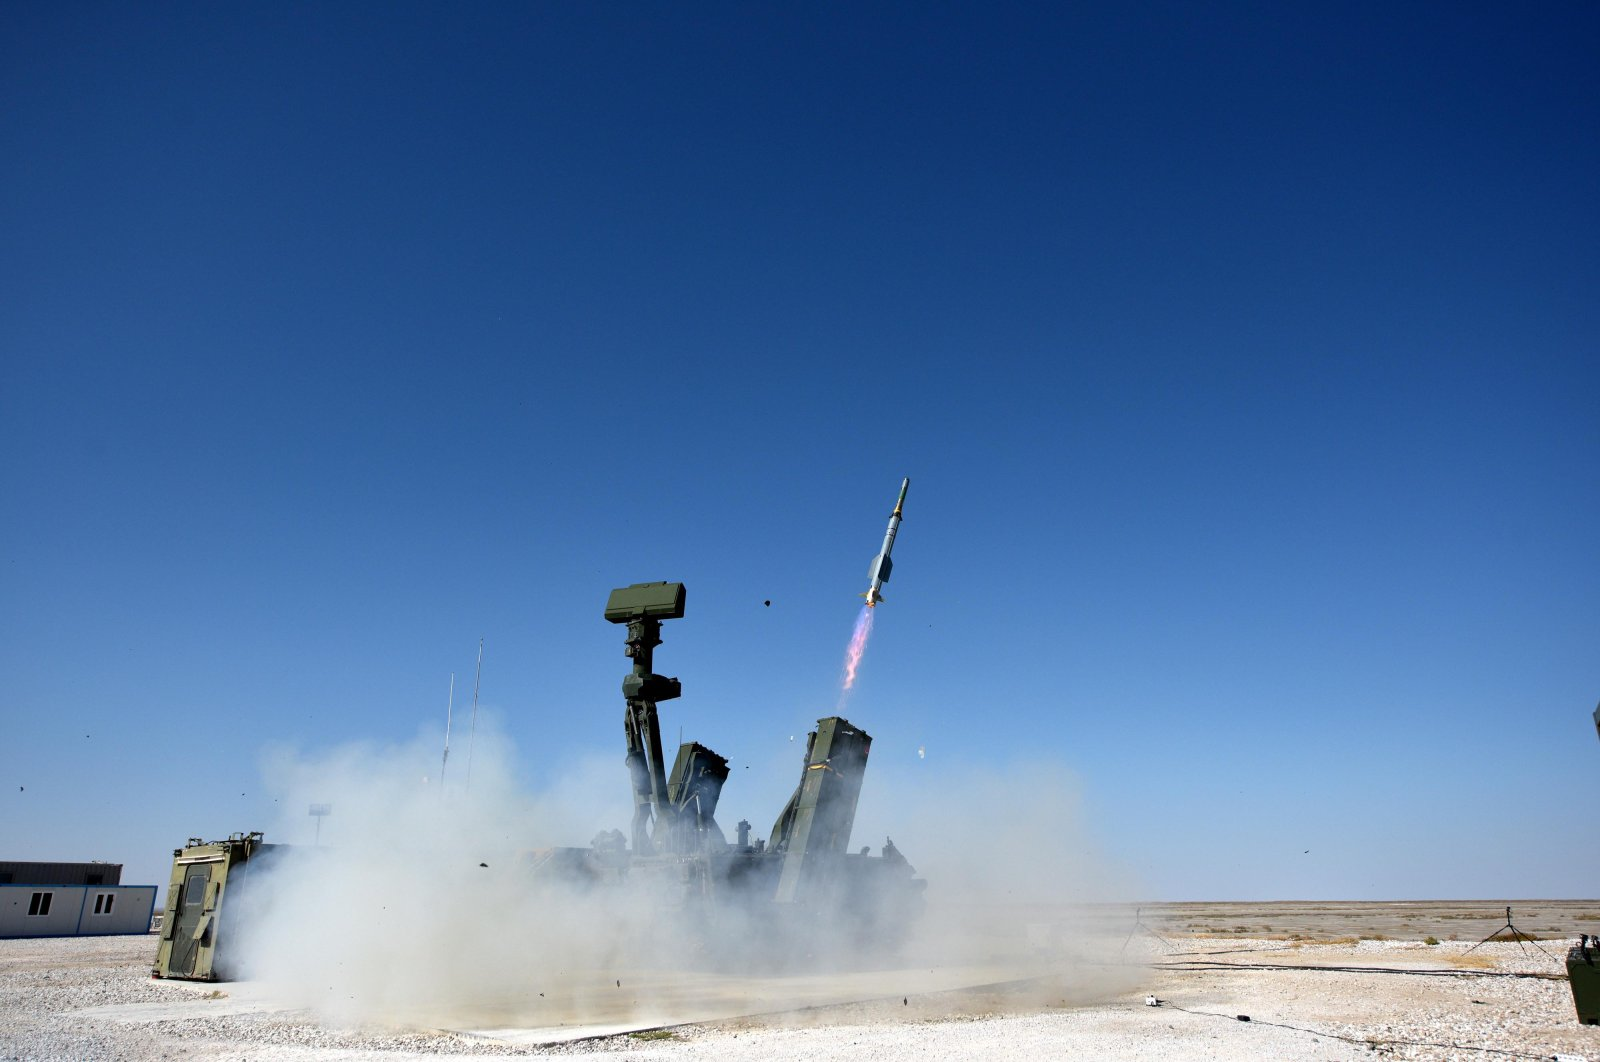 A file photo from the tests of the domestic low-altitude Hisar-A air defense system at the Defense Industries' complex in central Turkey's Aksaray province, Oct. 12, 2019. (DHA Photo)